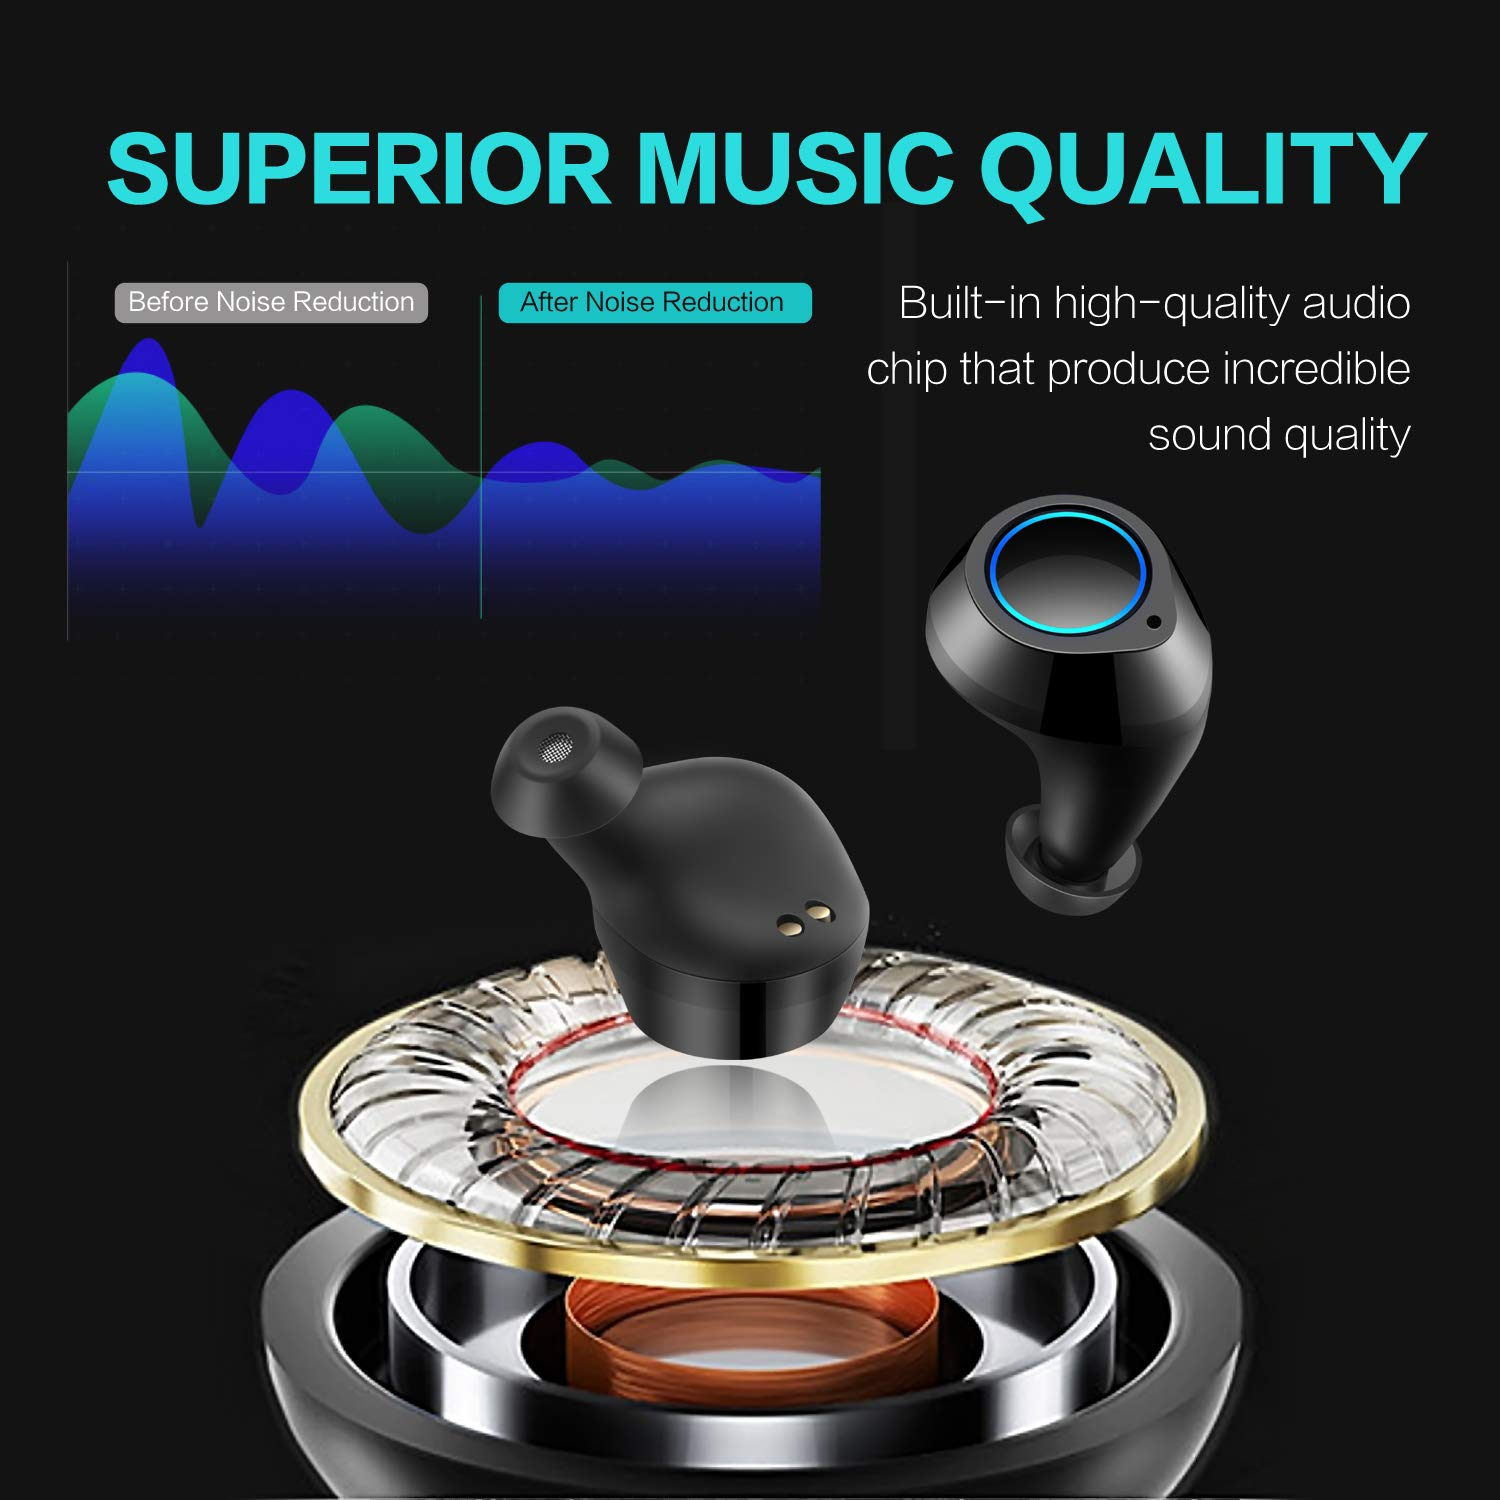 Ailicam True Wireless Earbuds TWS Bluetooth 5.0 IPX6 Waterproof 25 Hours Playtime, TWS Noise Cancelling Earphones Instant Pairing with Mic and Charging Case (Black) by Ailicam (Image #4)